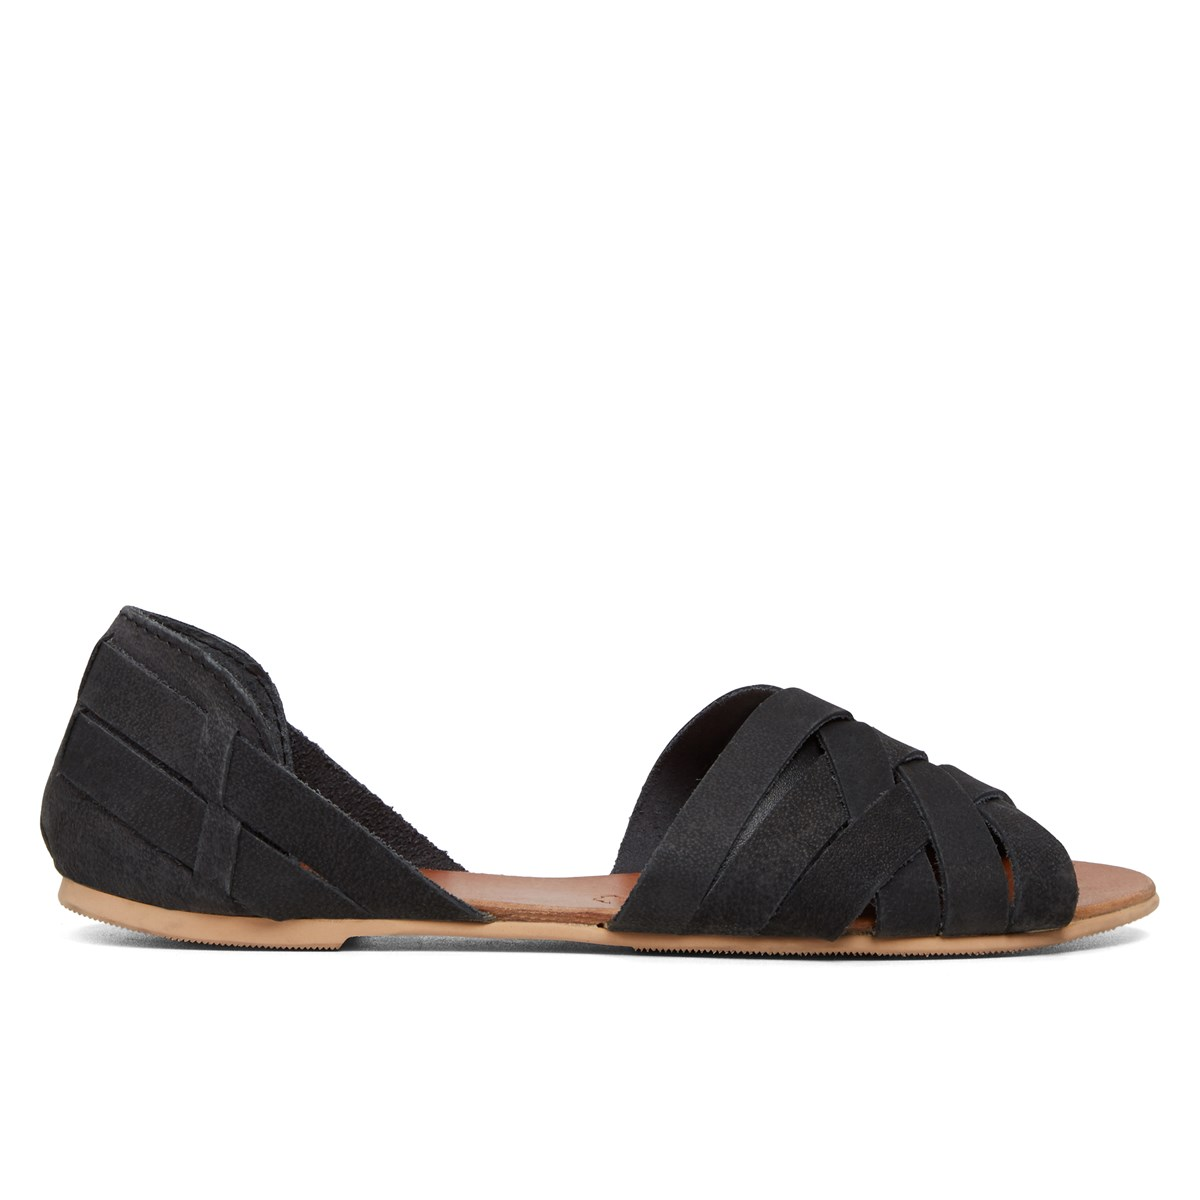 Women's Umaewien Black Sandals